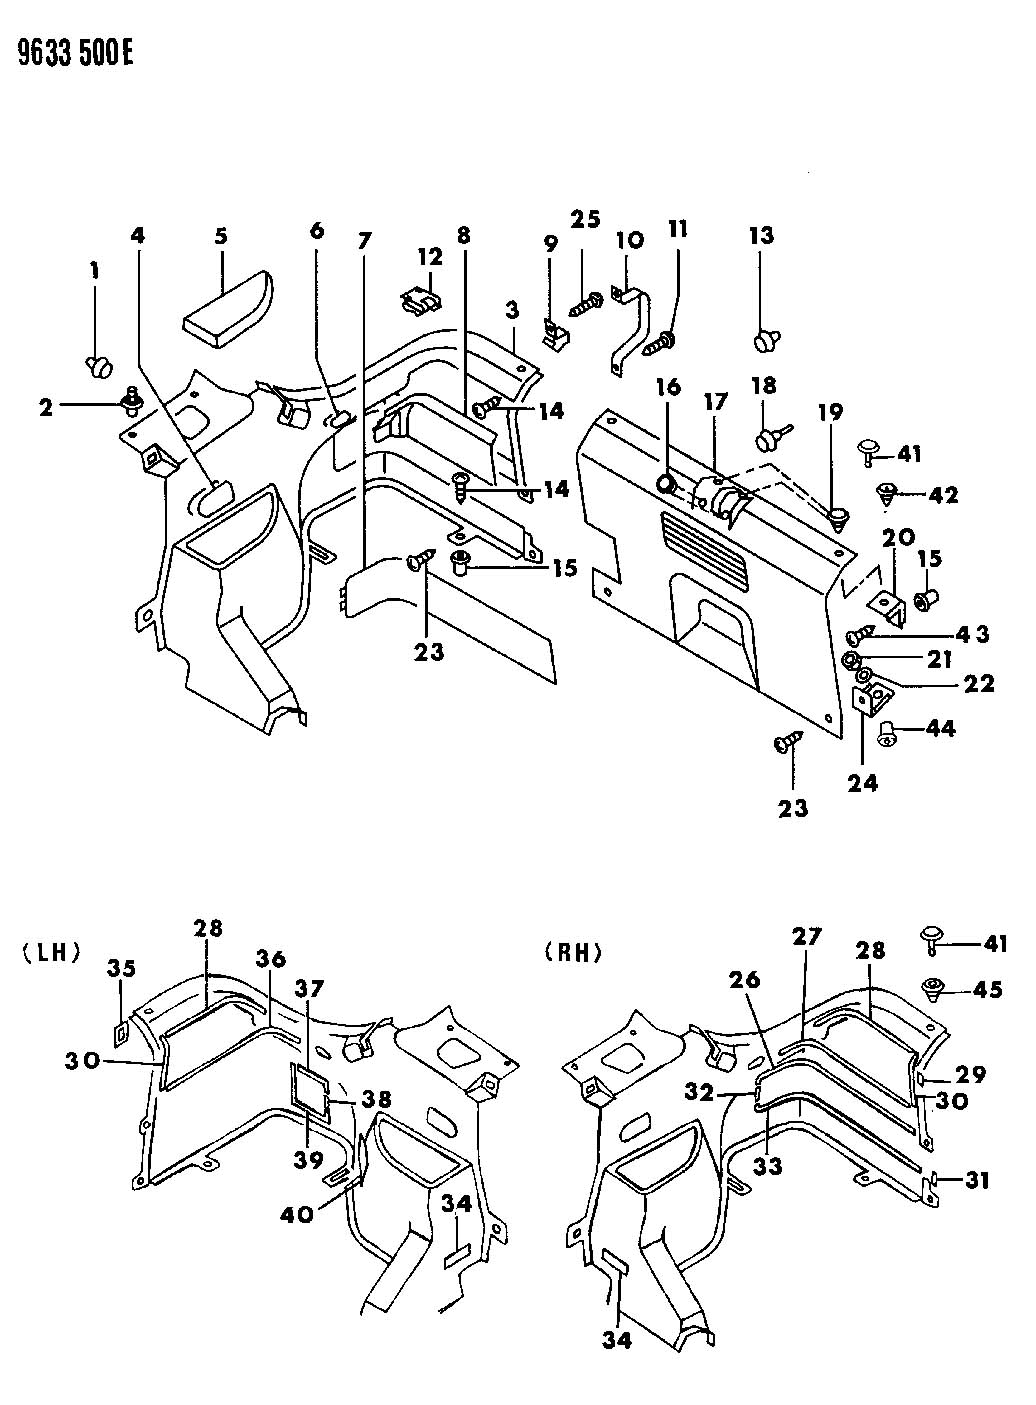 2001 subaru outback parts diagram 1992 club car ds wiring ford front embly imageresizertool com